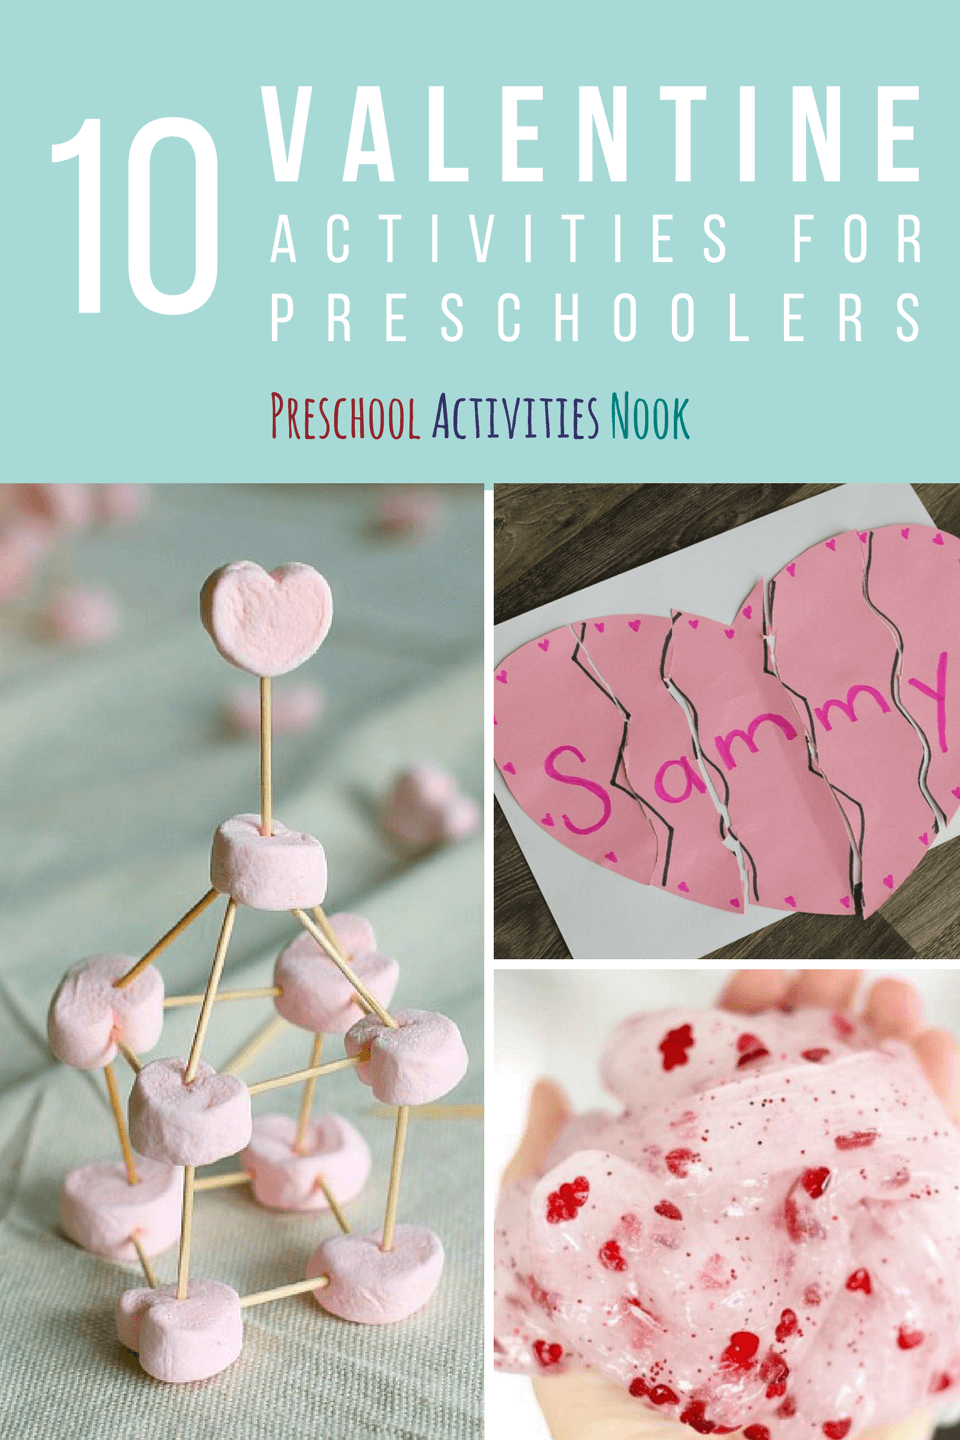 Make heart crafts and Valentine activities for kids! These are great February craft ideas for kids with gross motor and fine motor activities.